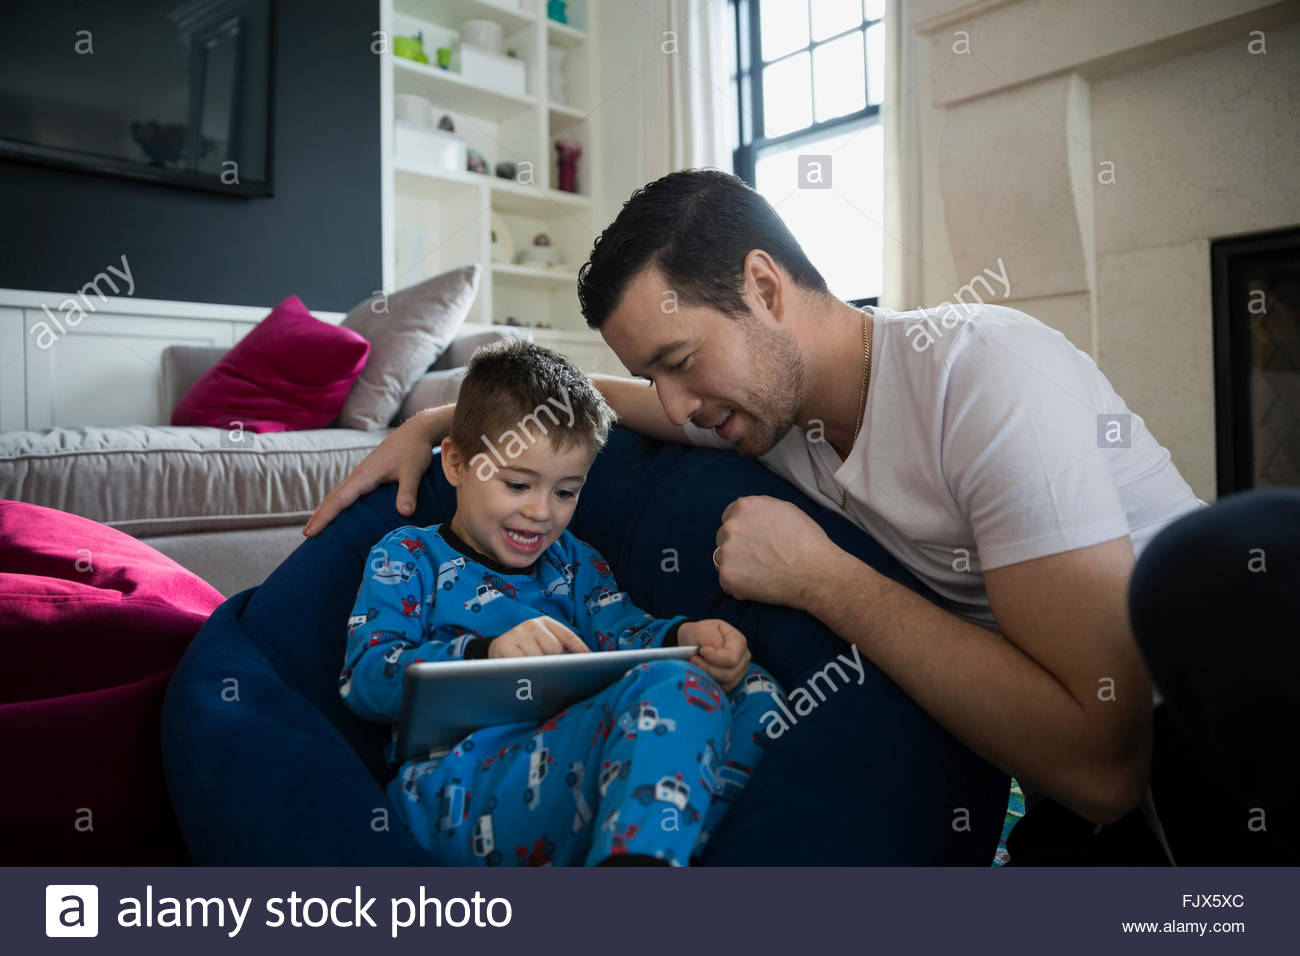 Father and son in pajamas using digital tablet - Stock Image